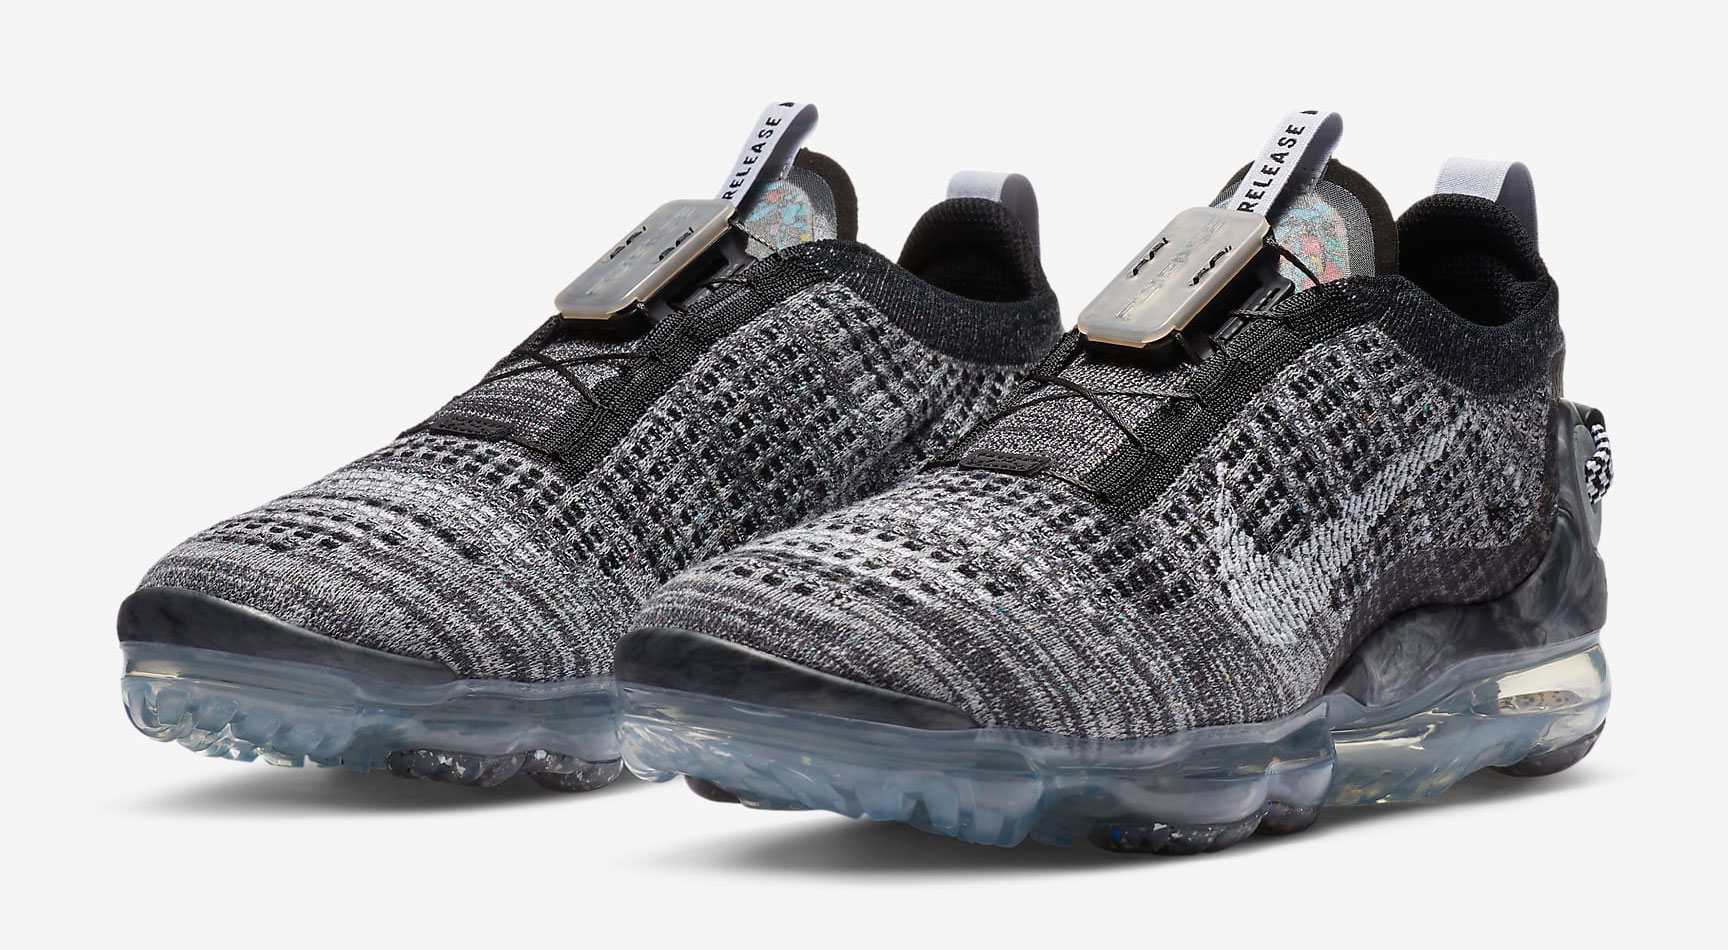 nike-air-vapormax-flyknit-2020-oreo-release-date-price-1